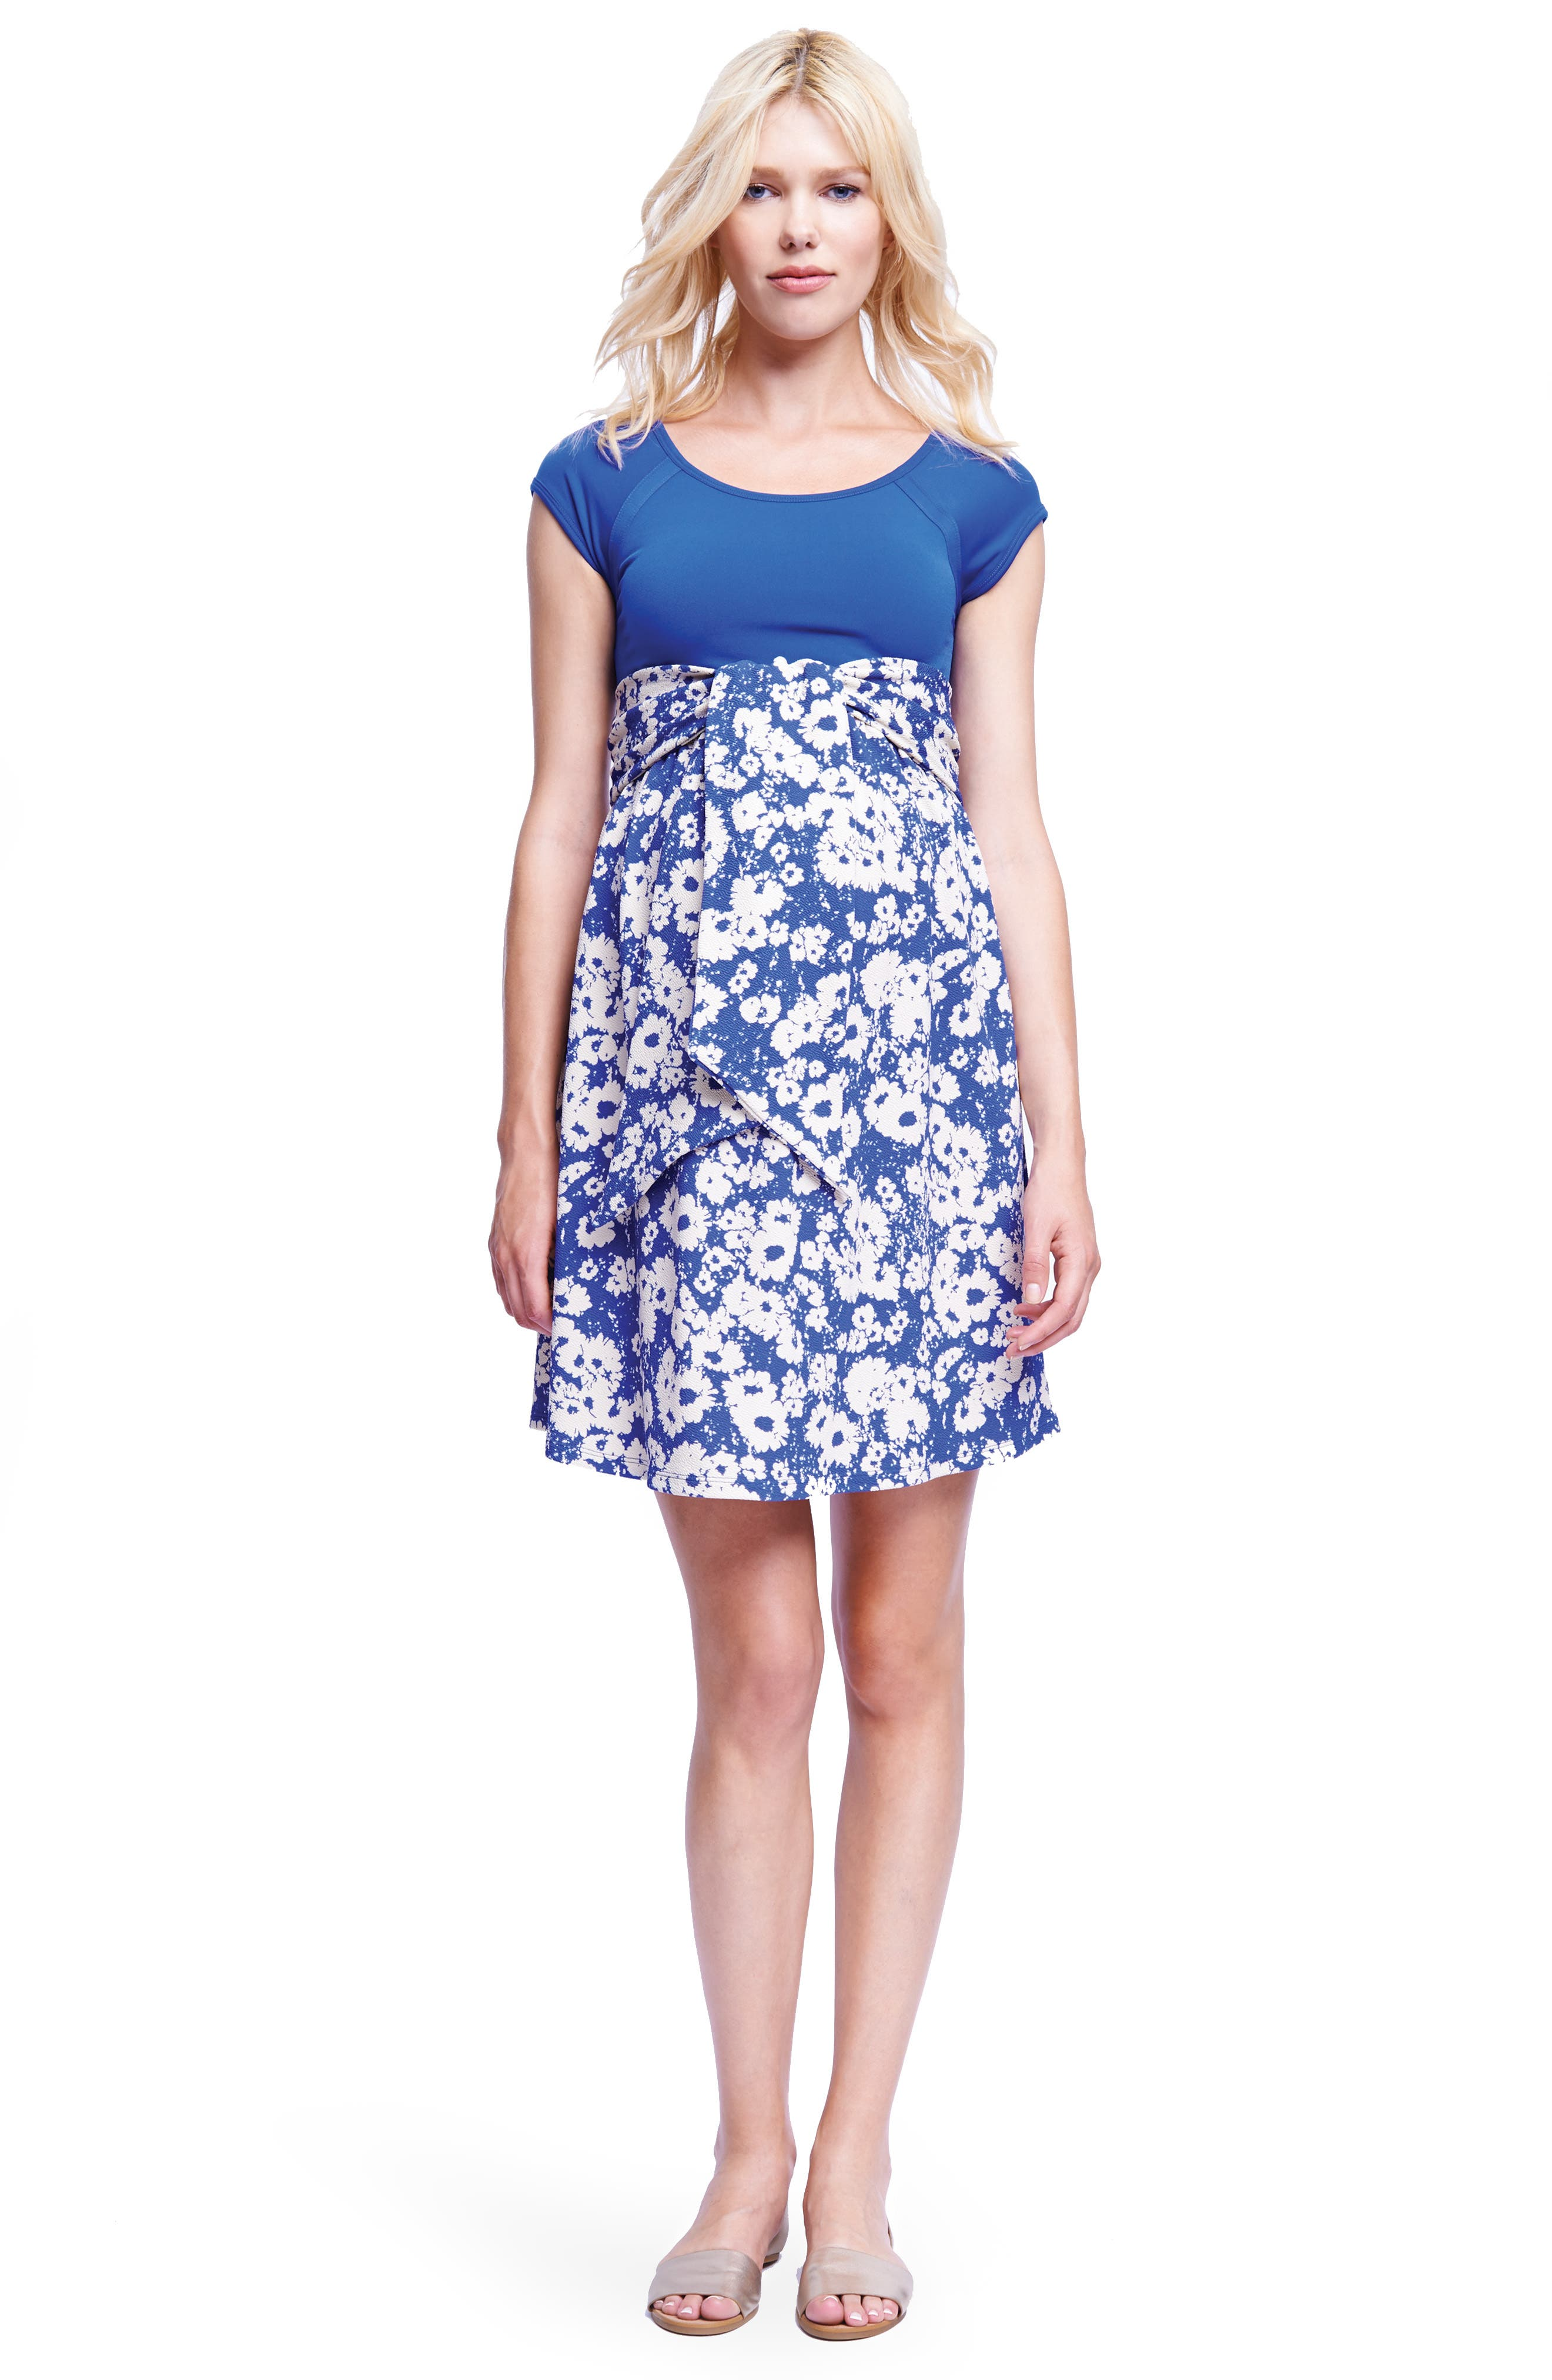 Tie Front Maternity Dress,                             Alternate thumbnail 4, color,                             ROYAL BLUE/ ABSTRACT DAISY